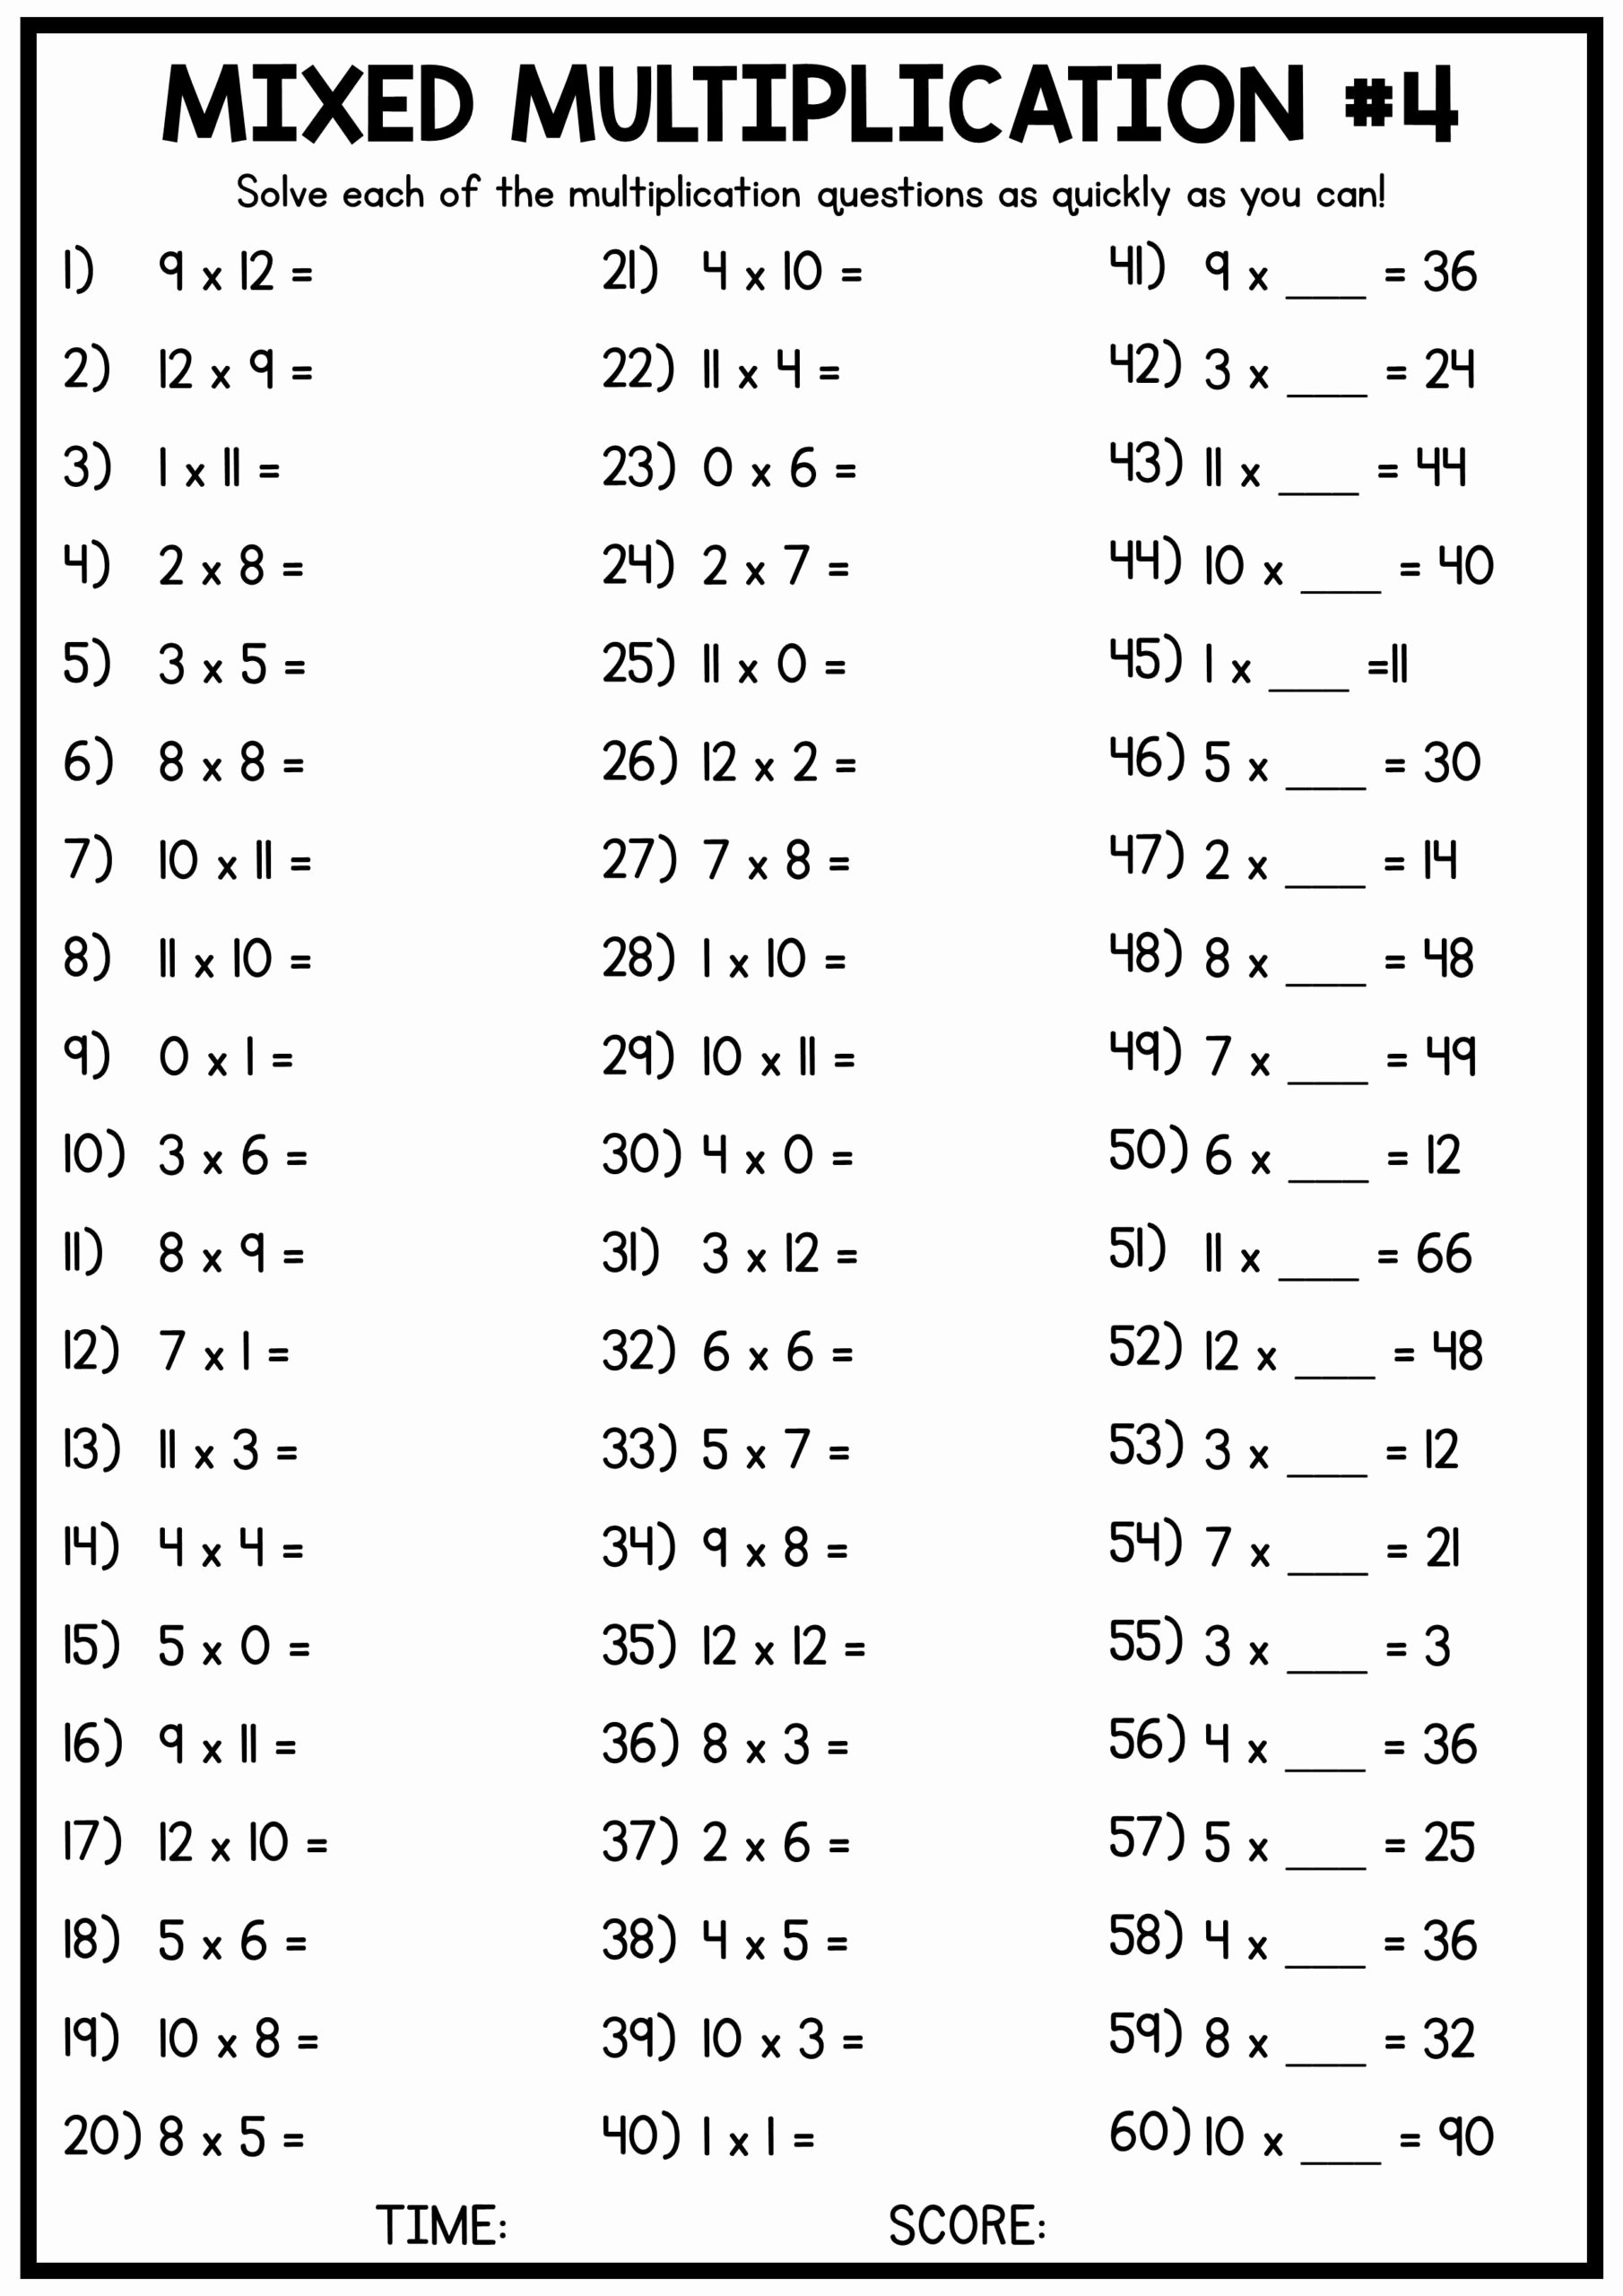 Custom Multiplication Worksheets Inspirational Mixed Multiplication Times Table Worksheets Free In Tables